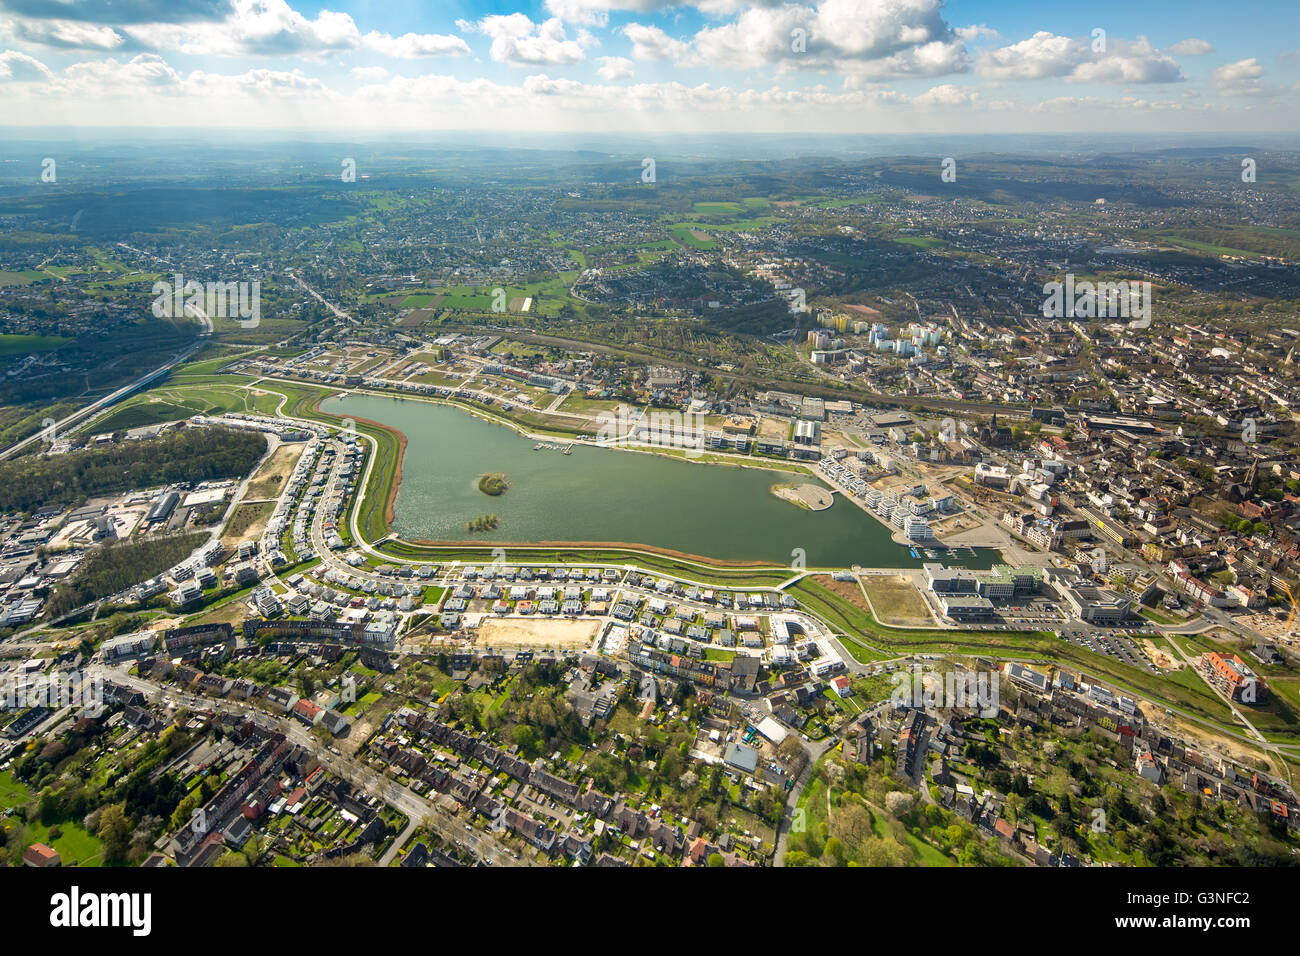 Aerial view, Phoenix Lake is an artificial lake on the former steelworks site Phoenix East in the Dortmund district - Stock Image